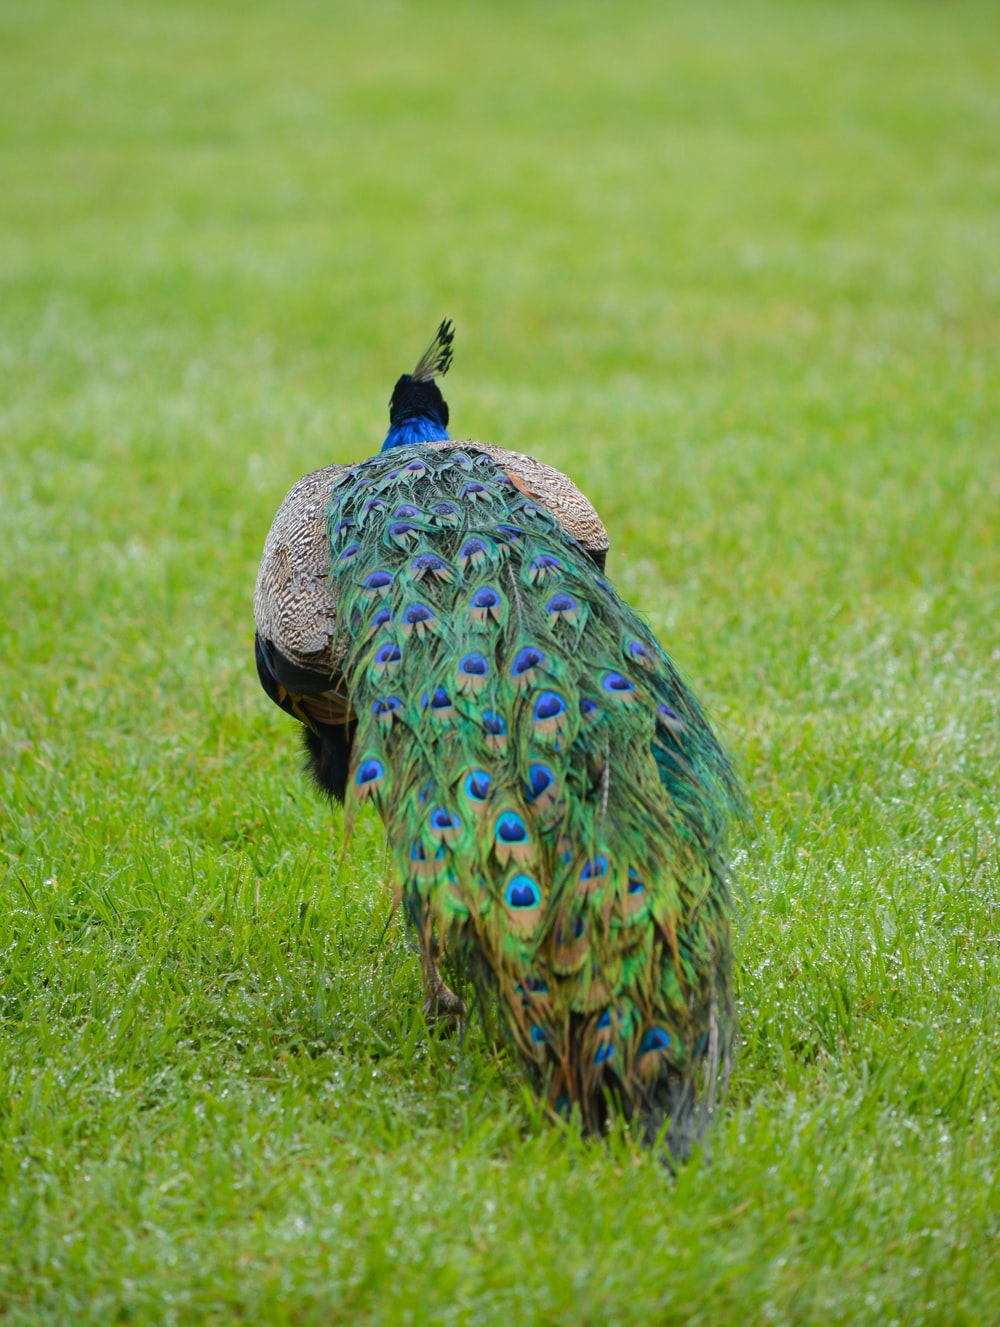 selective focus photography of Indian peafowl on green grass field